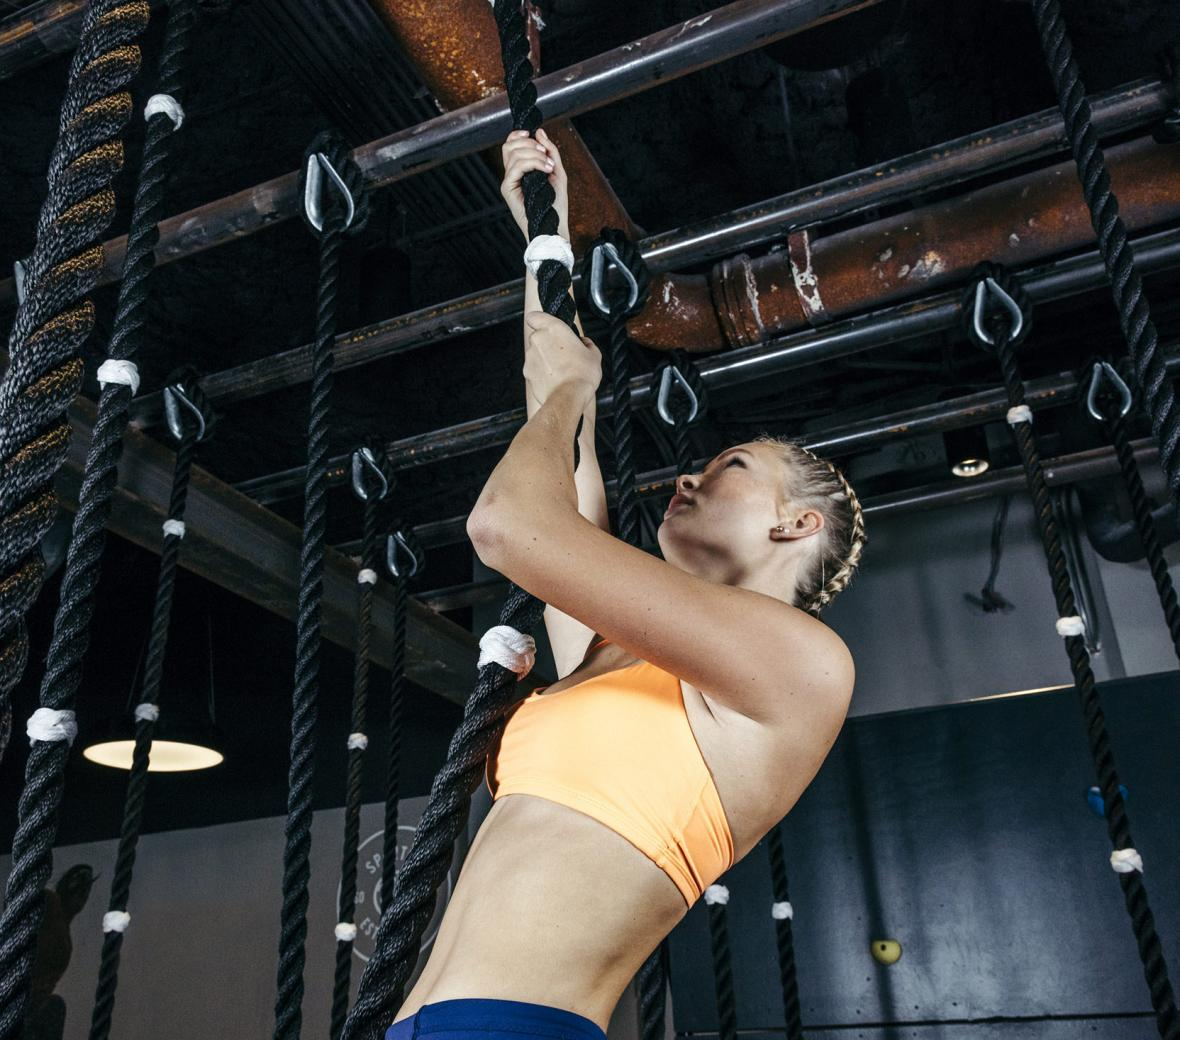 Woman climbing rope at spartan gym